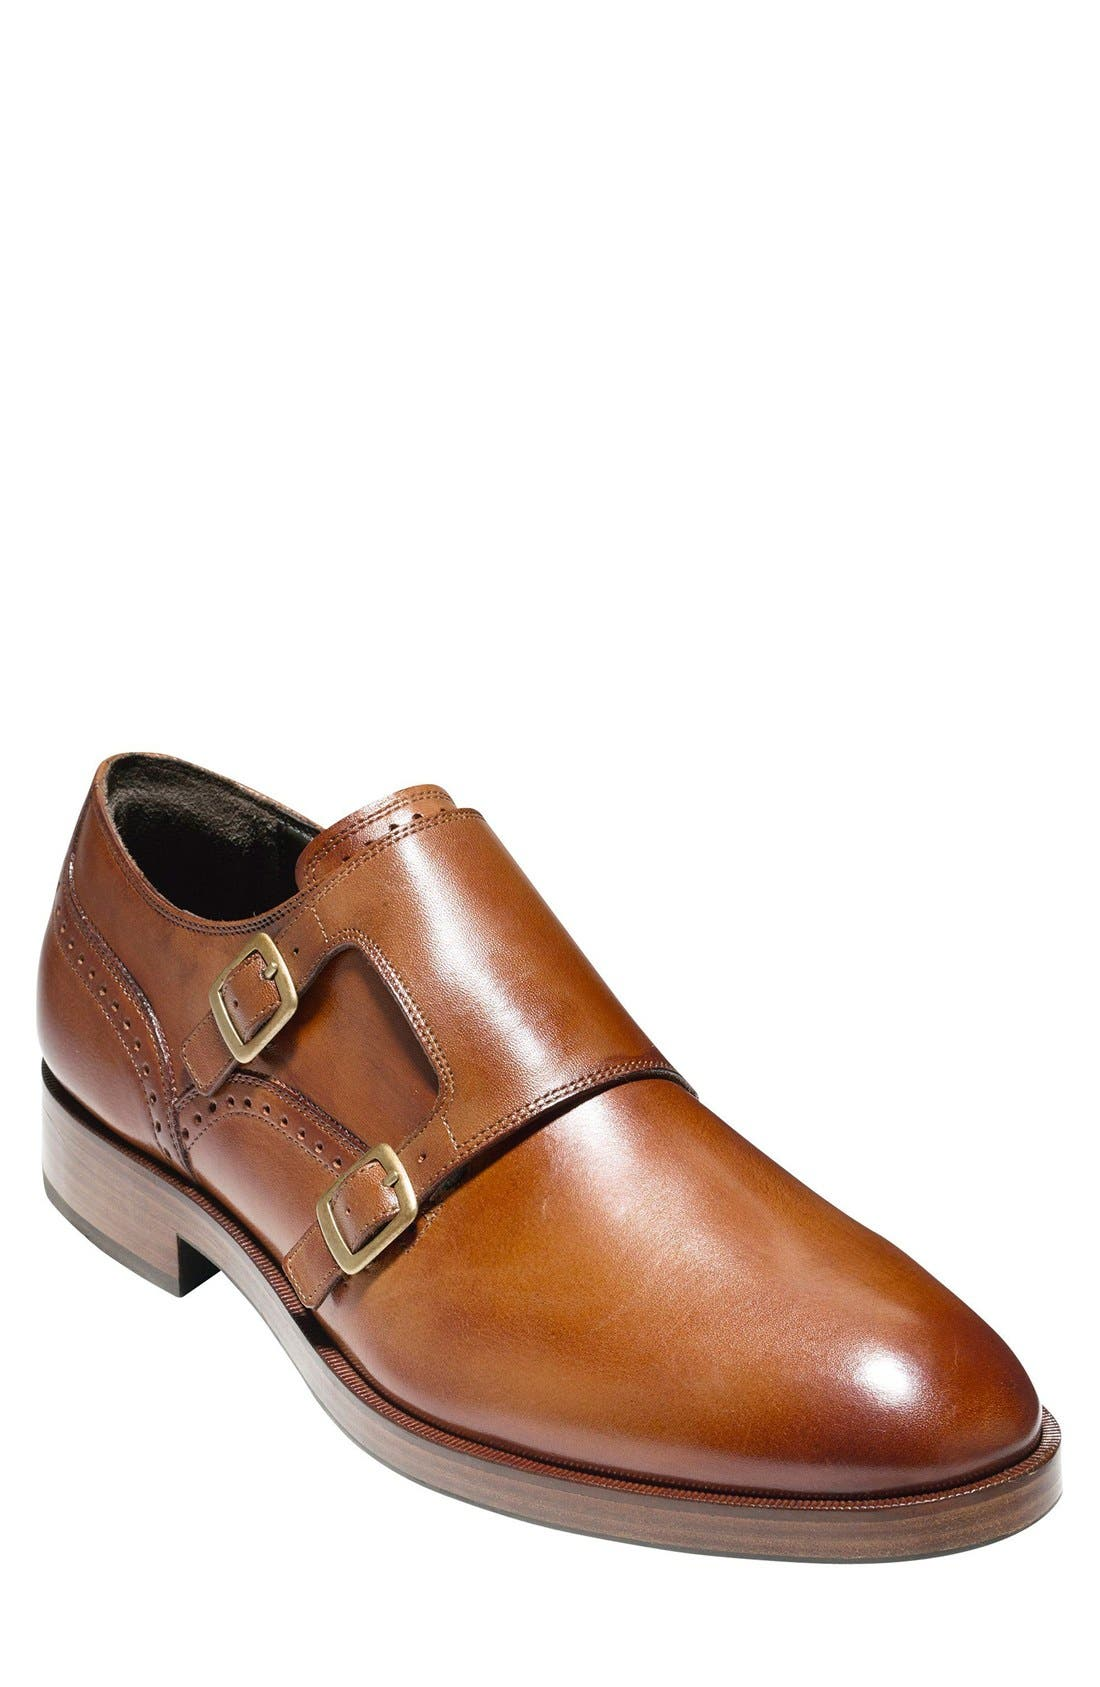 'Harrison' Double Monk Strap Shoe,                         Main,                         color, BRITISH TAN LEATHER